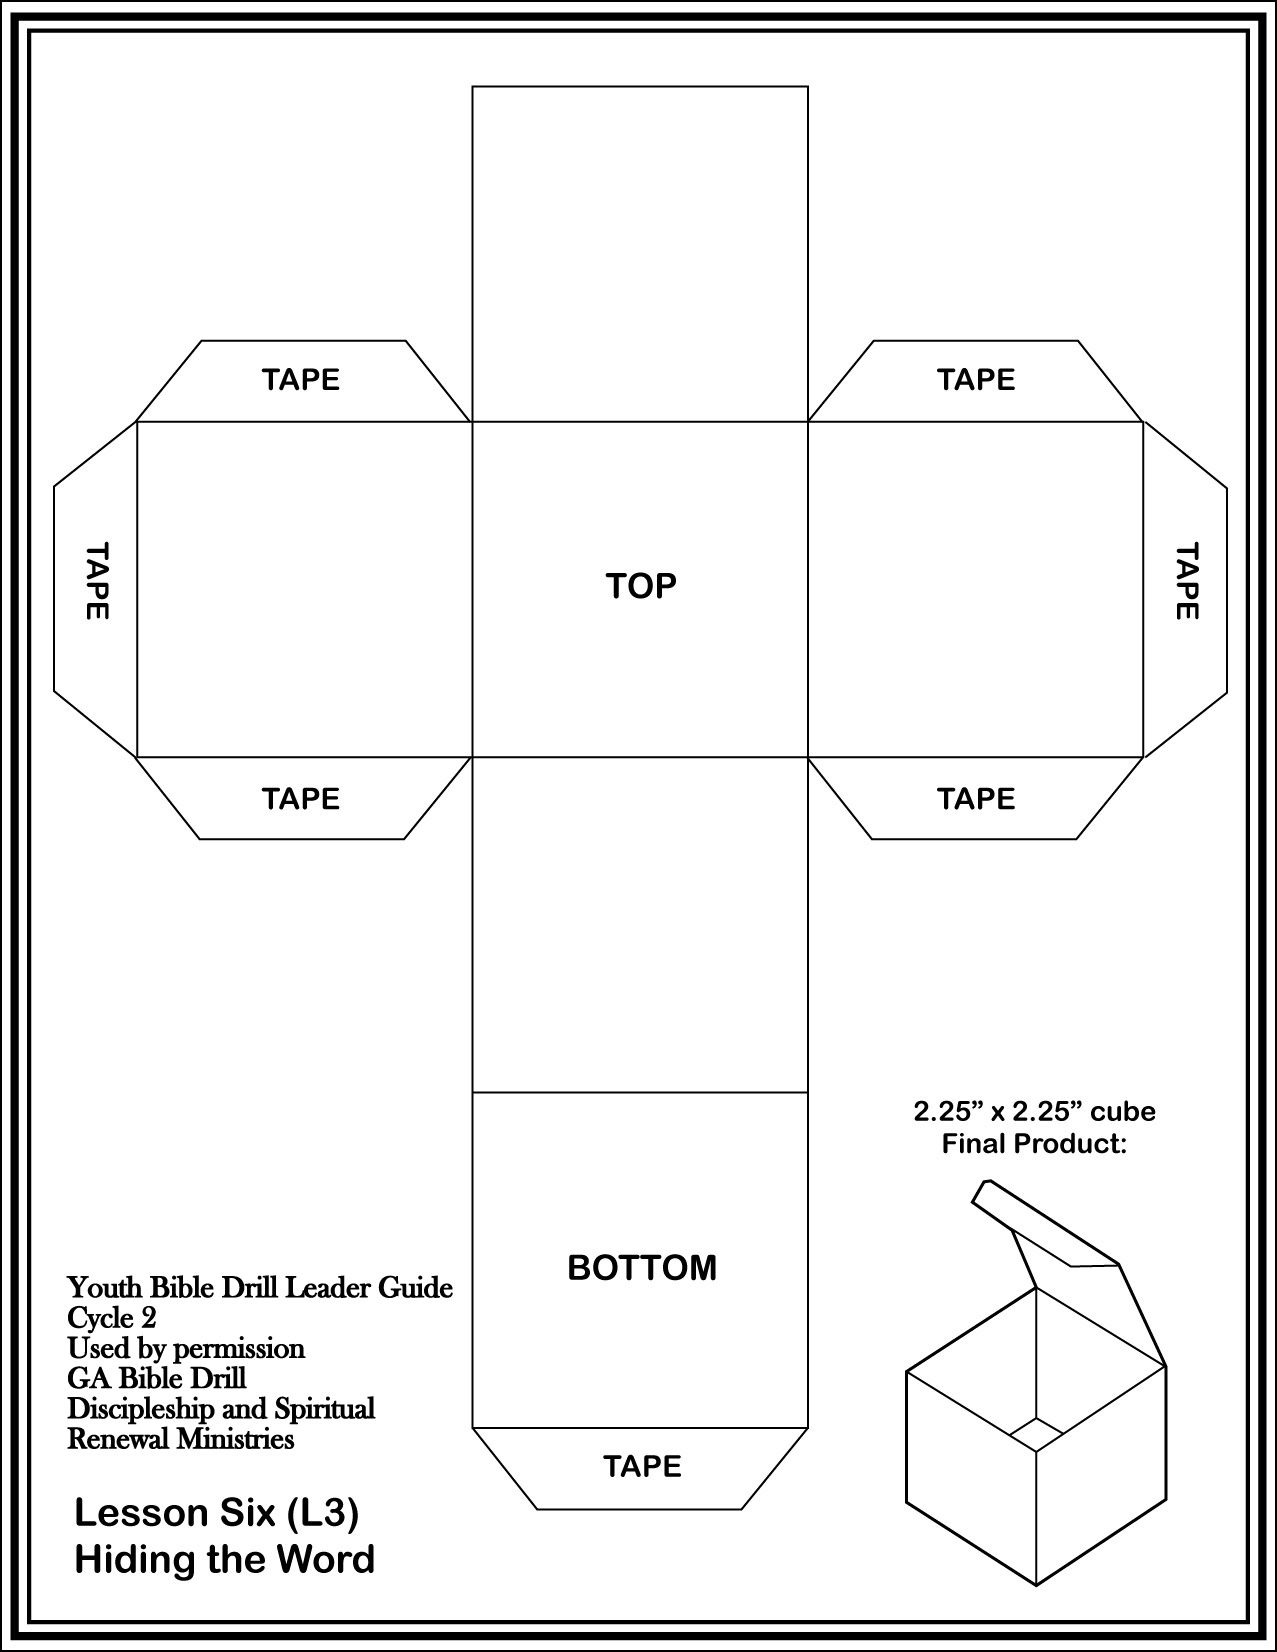 Download And Print Off The Cube Template On Cardstock And Assemble